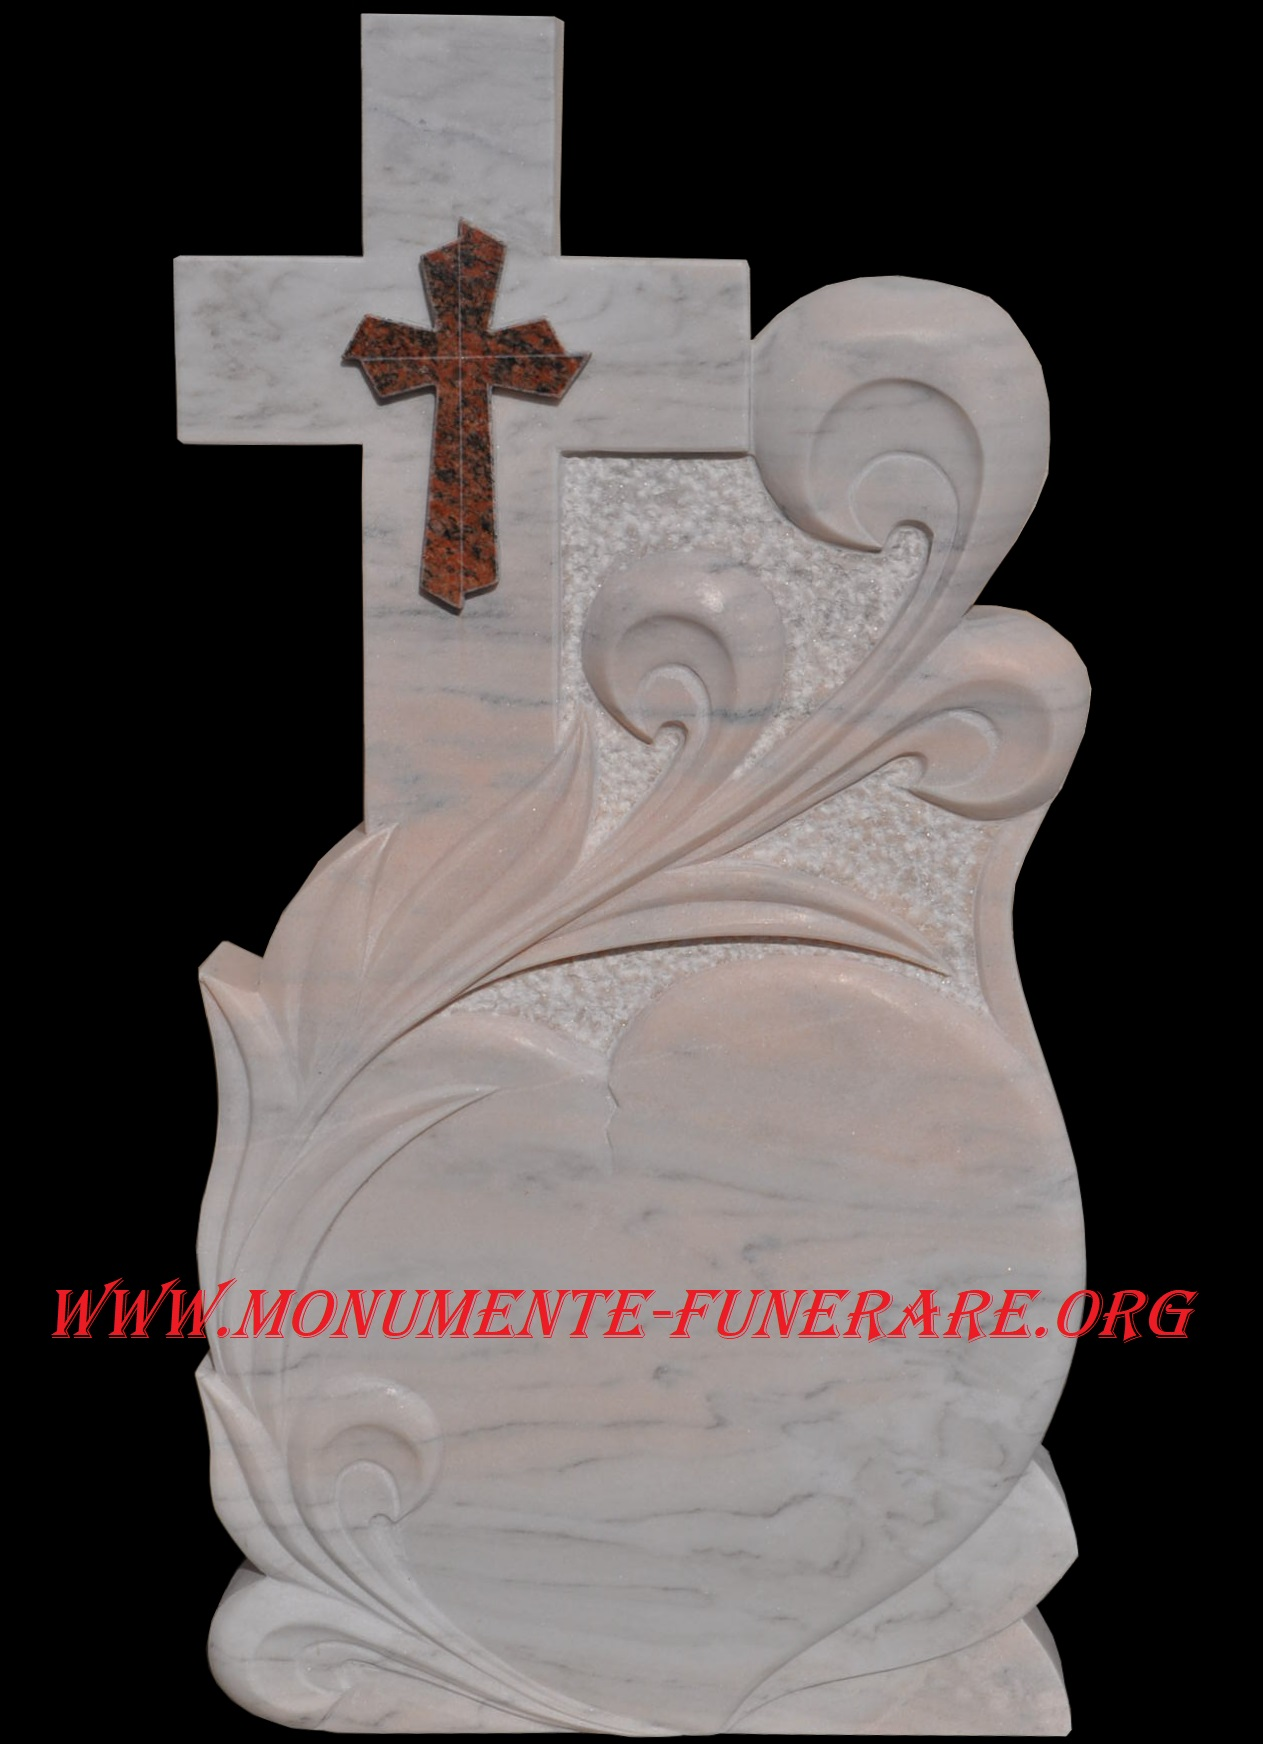 monument funerar model stylaz13